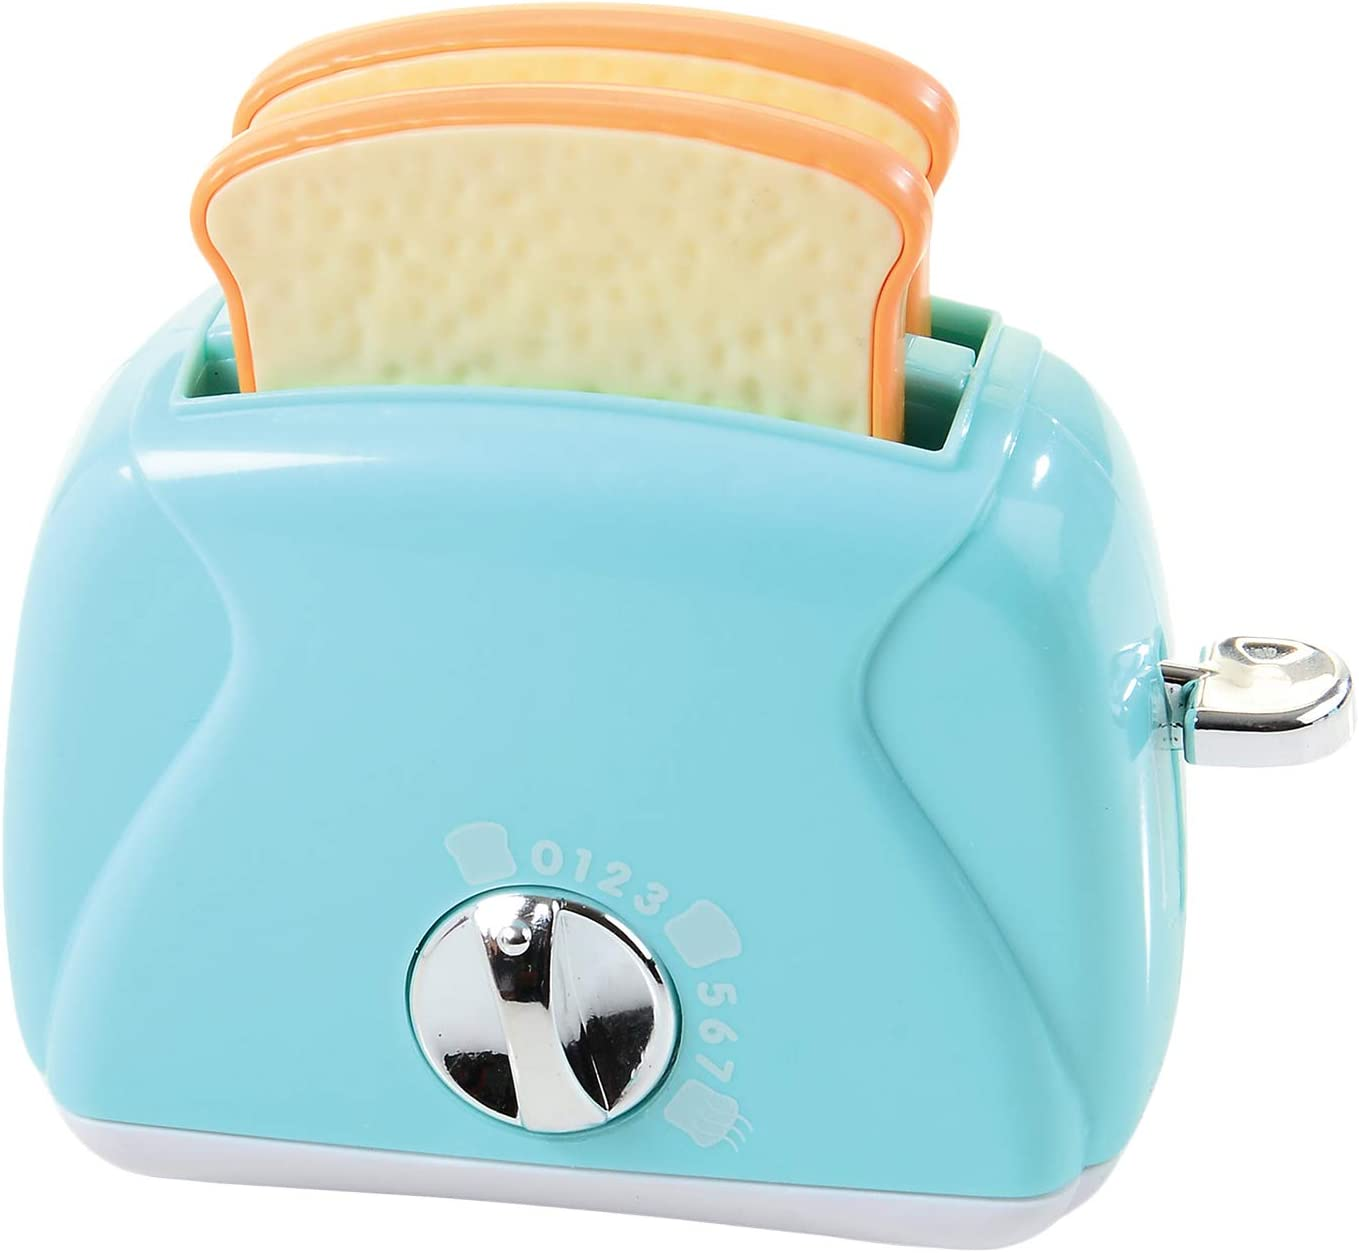 CP Toys My Toaster Toy | Ages 3+ Years for Preschooler, Children, Gift, Play Kitchen Appliance